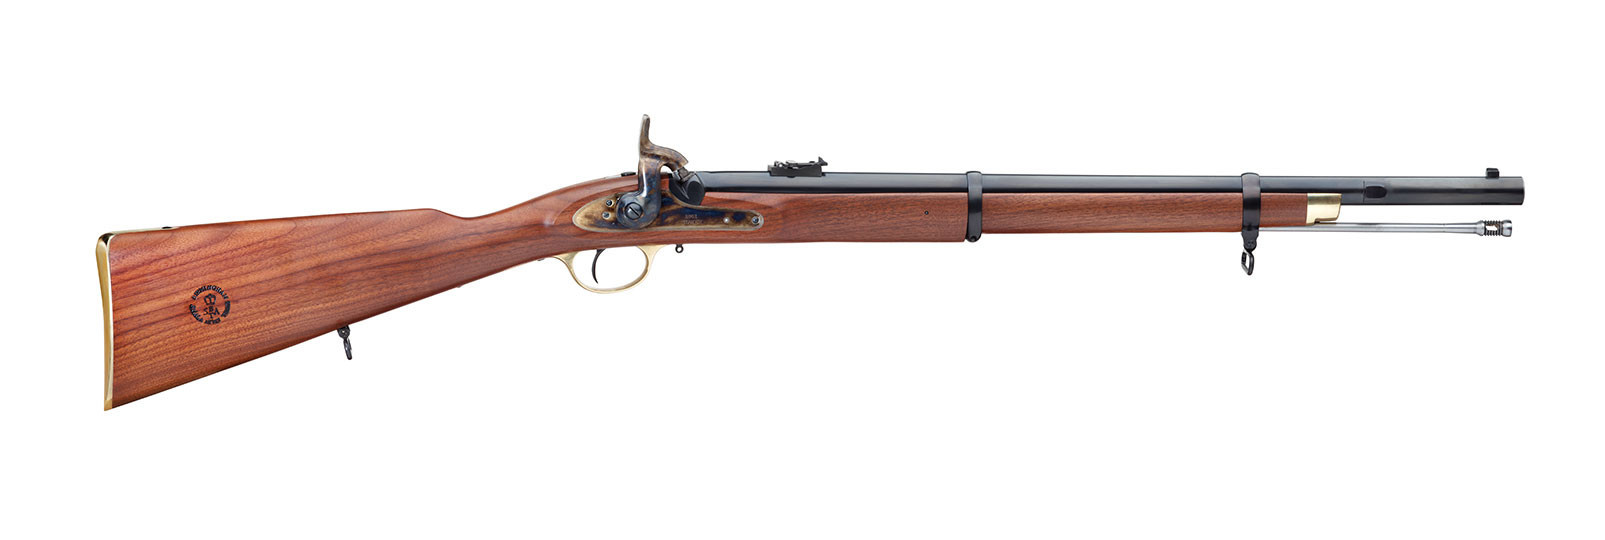 Enfield Musketoon P1861 Rifle